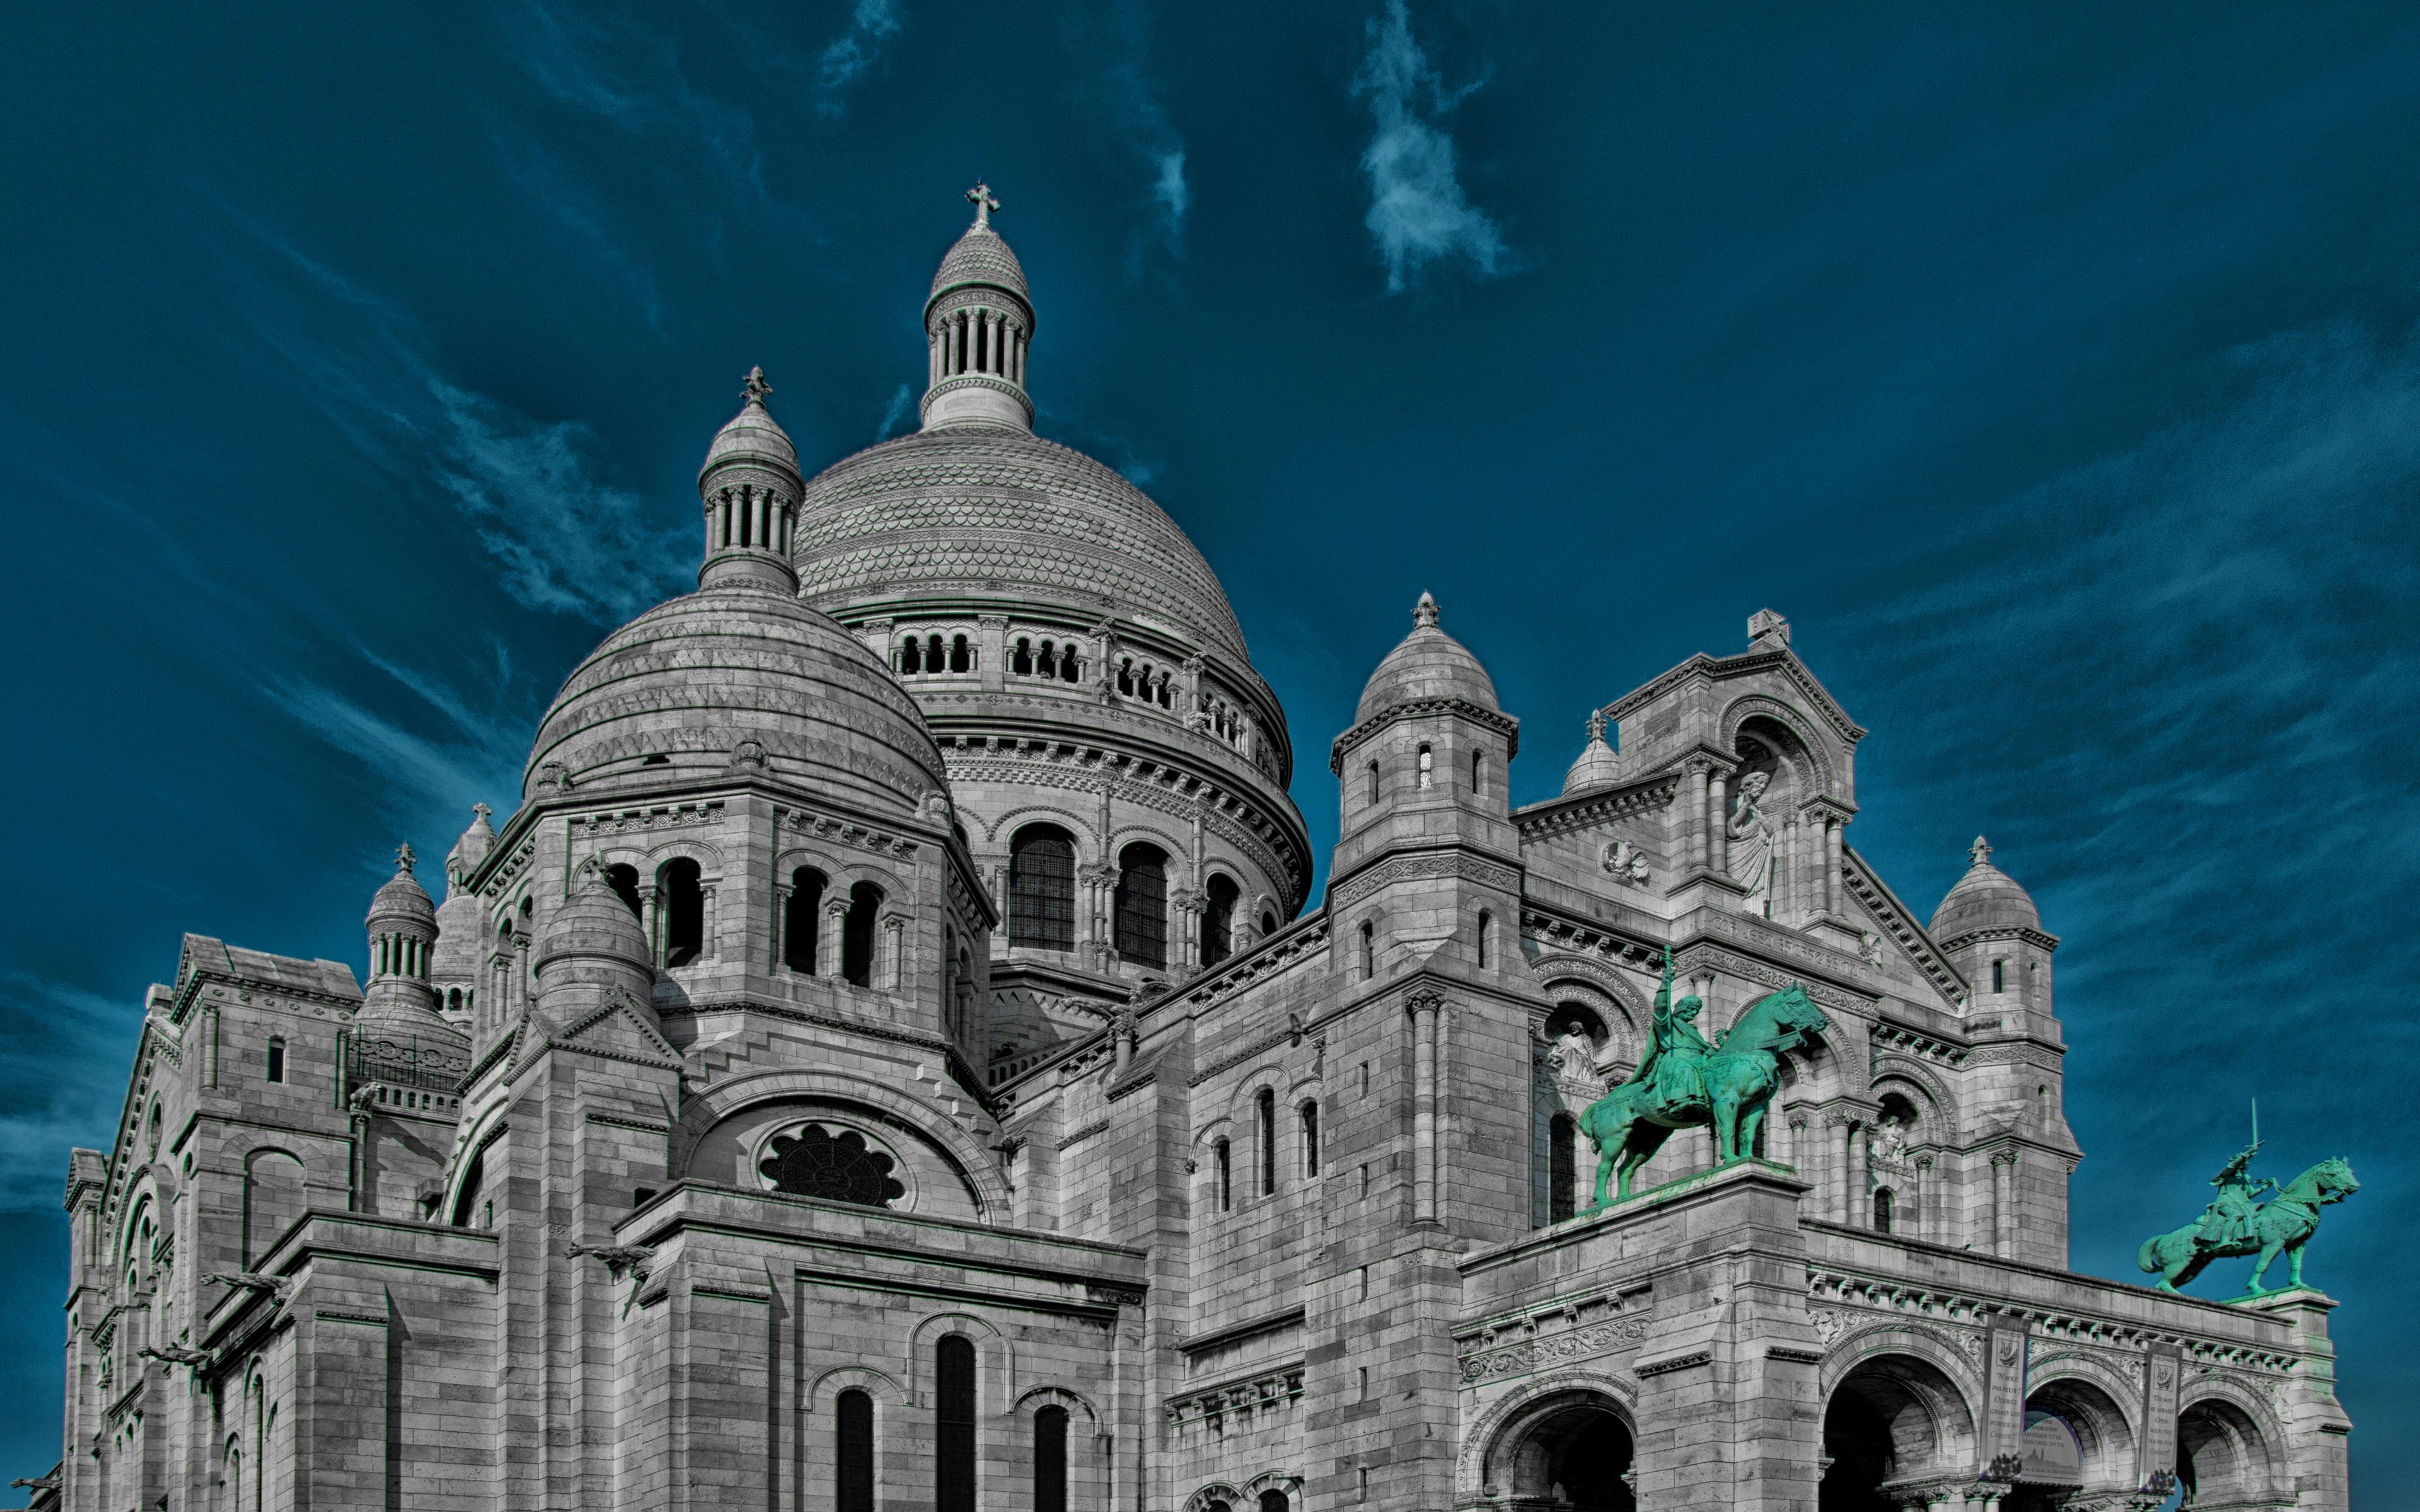 Download wallpapers Sacre Coeur, 4k, french landmarks, church